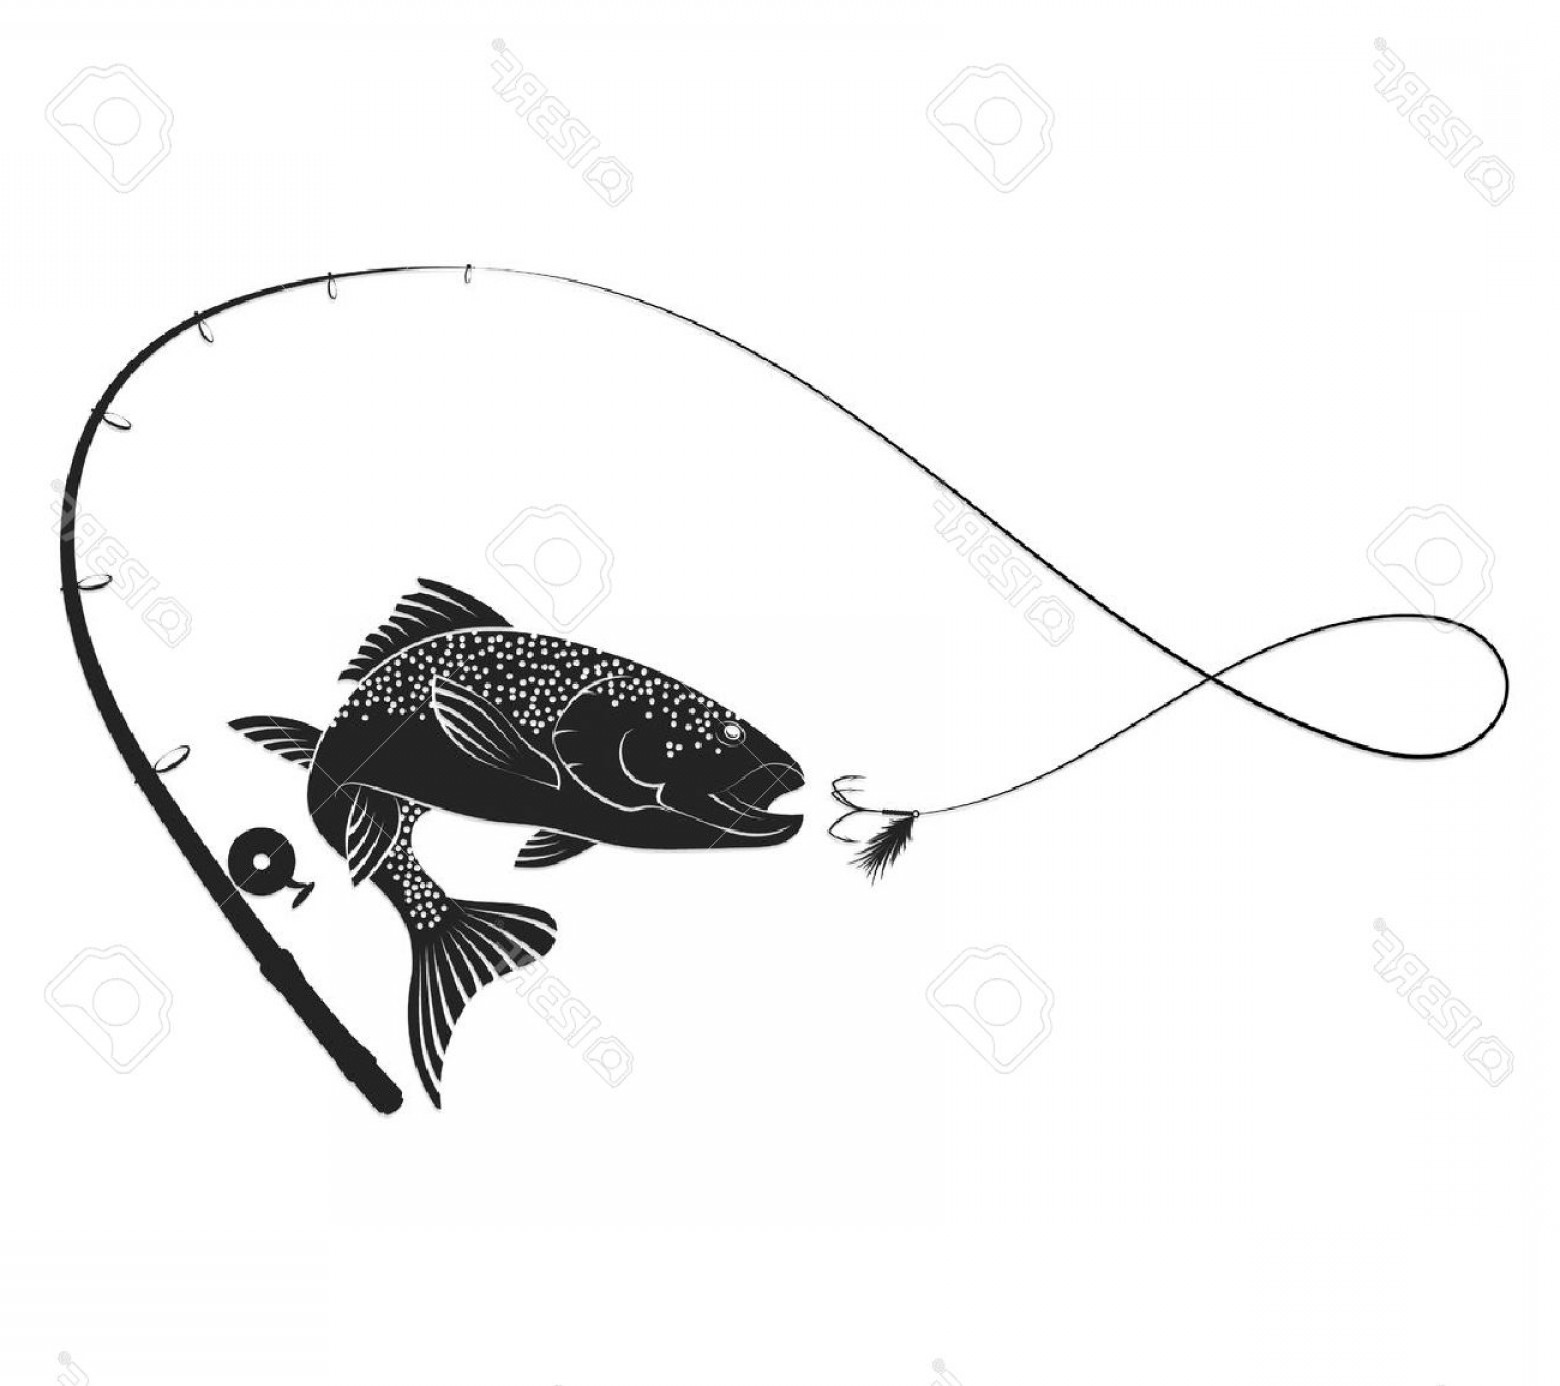 Fishing Pole Silhouette Vector: Photostock Vector Fish Jumping For Bait And Fishing Rod Silhouette